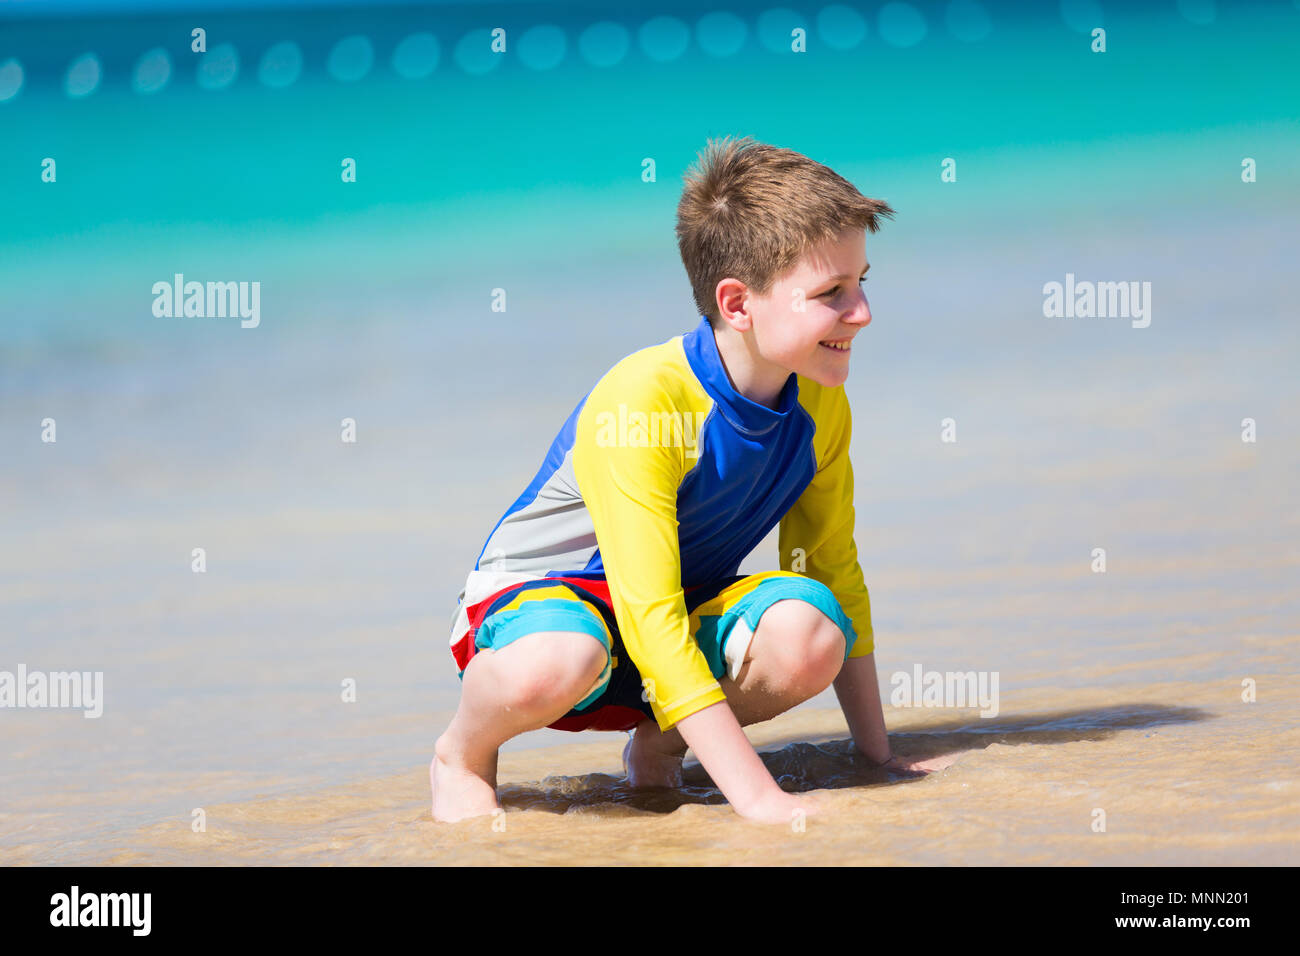 Handsome pre-teen age boy playing with sand at tropical beach on summer vacation Stock Photo